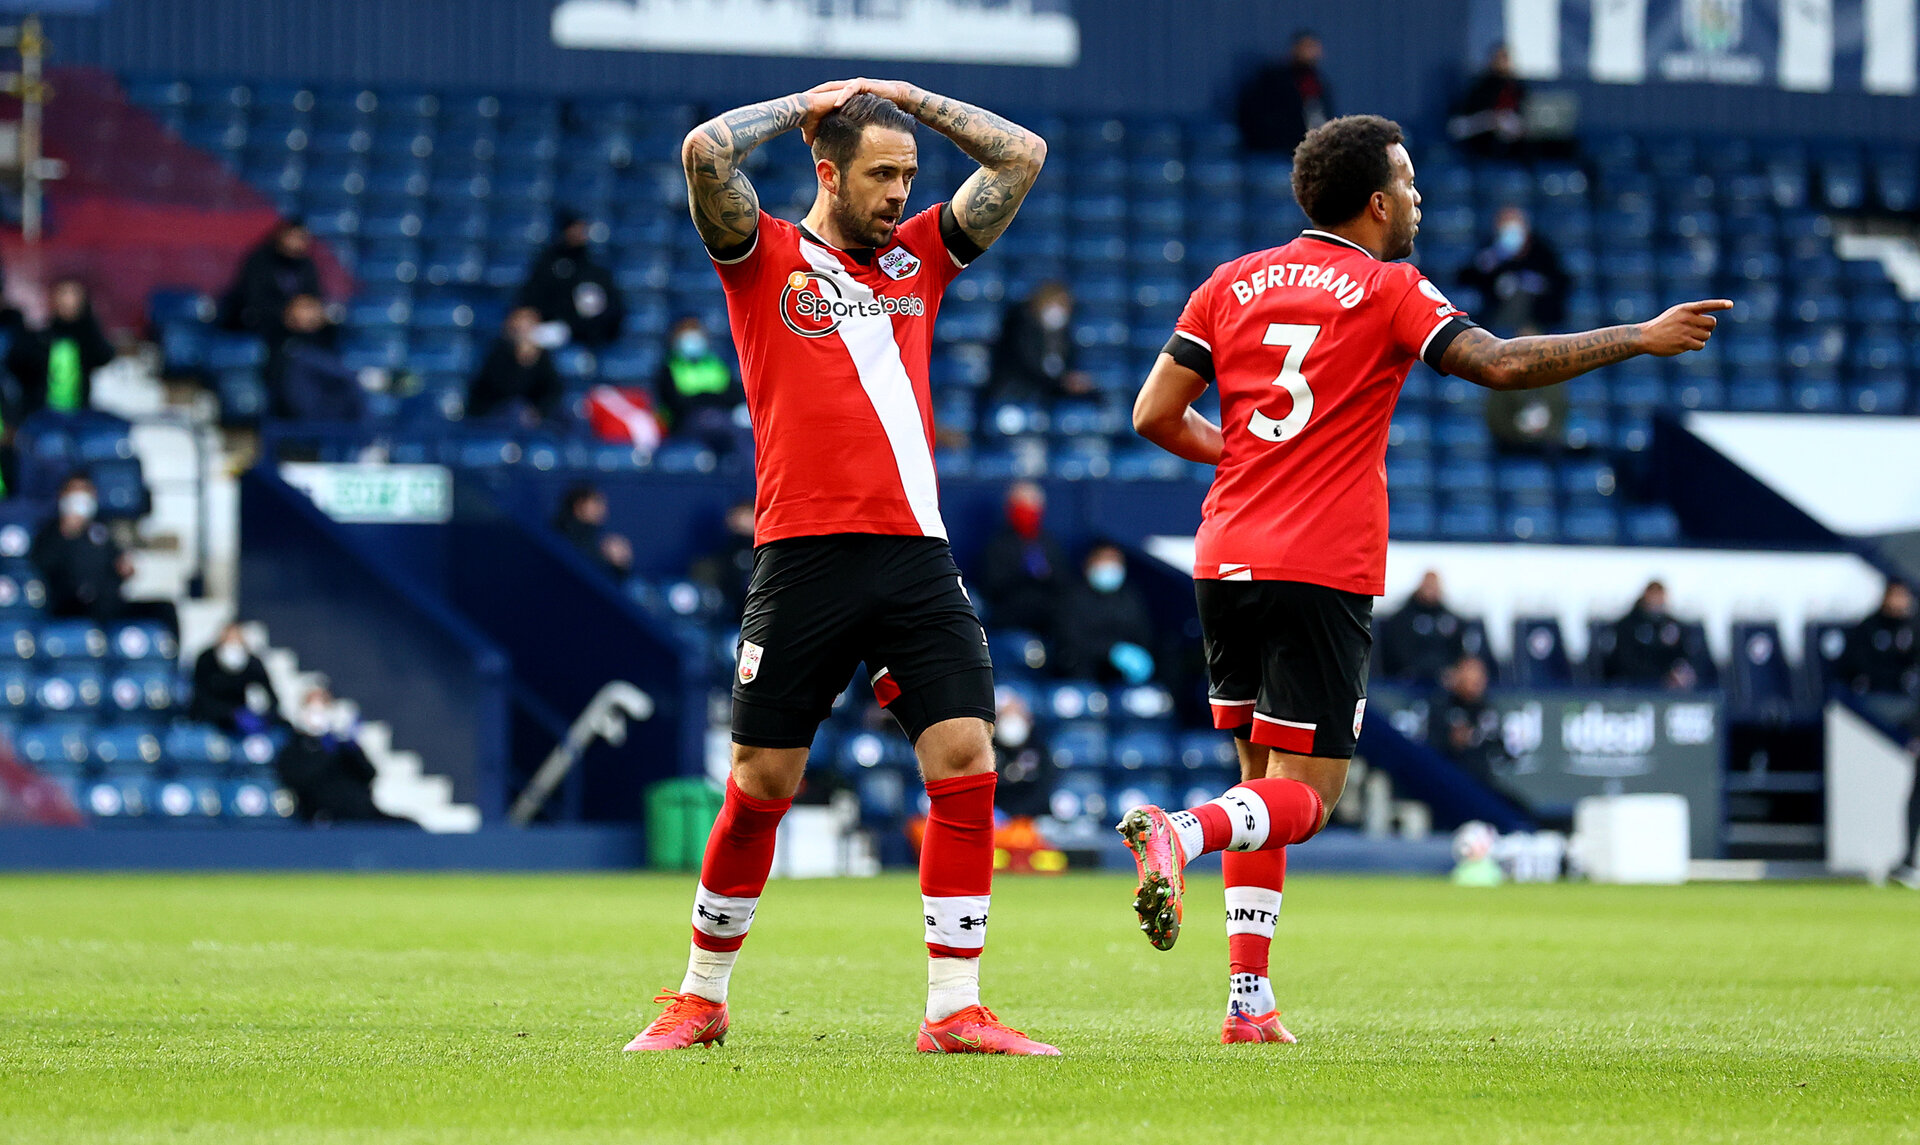 WEST BROMWICH, ENGLAND - APRIL 12: Danny Ings of Southampton dejected during the Premier League match between West Bromwich Albion and Southampton at The Hawthorns on April 12, 2021 in West Bromwich, England. Sporting stadiums around the UK remain under strict restrictions due to the Coronavirus Pandemic as Government social distancing laws prohibit fans inside venues resulting in games being played behind closed doors. (Photo by Matt Watson/Southampton FC via Getty Images)